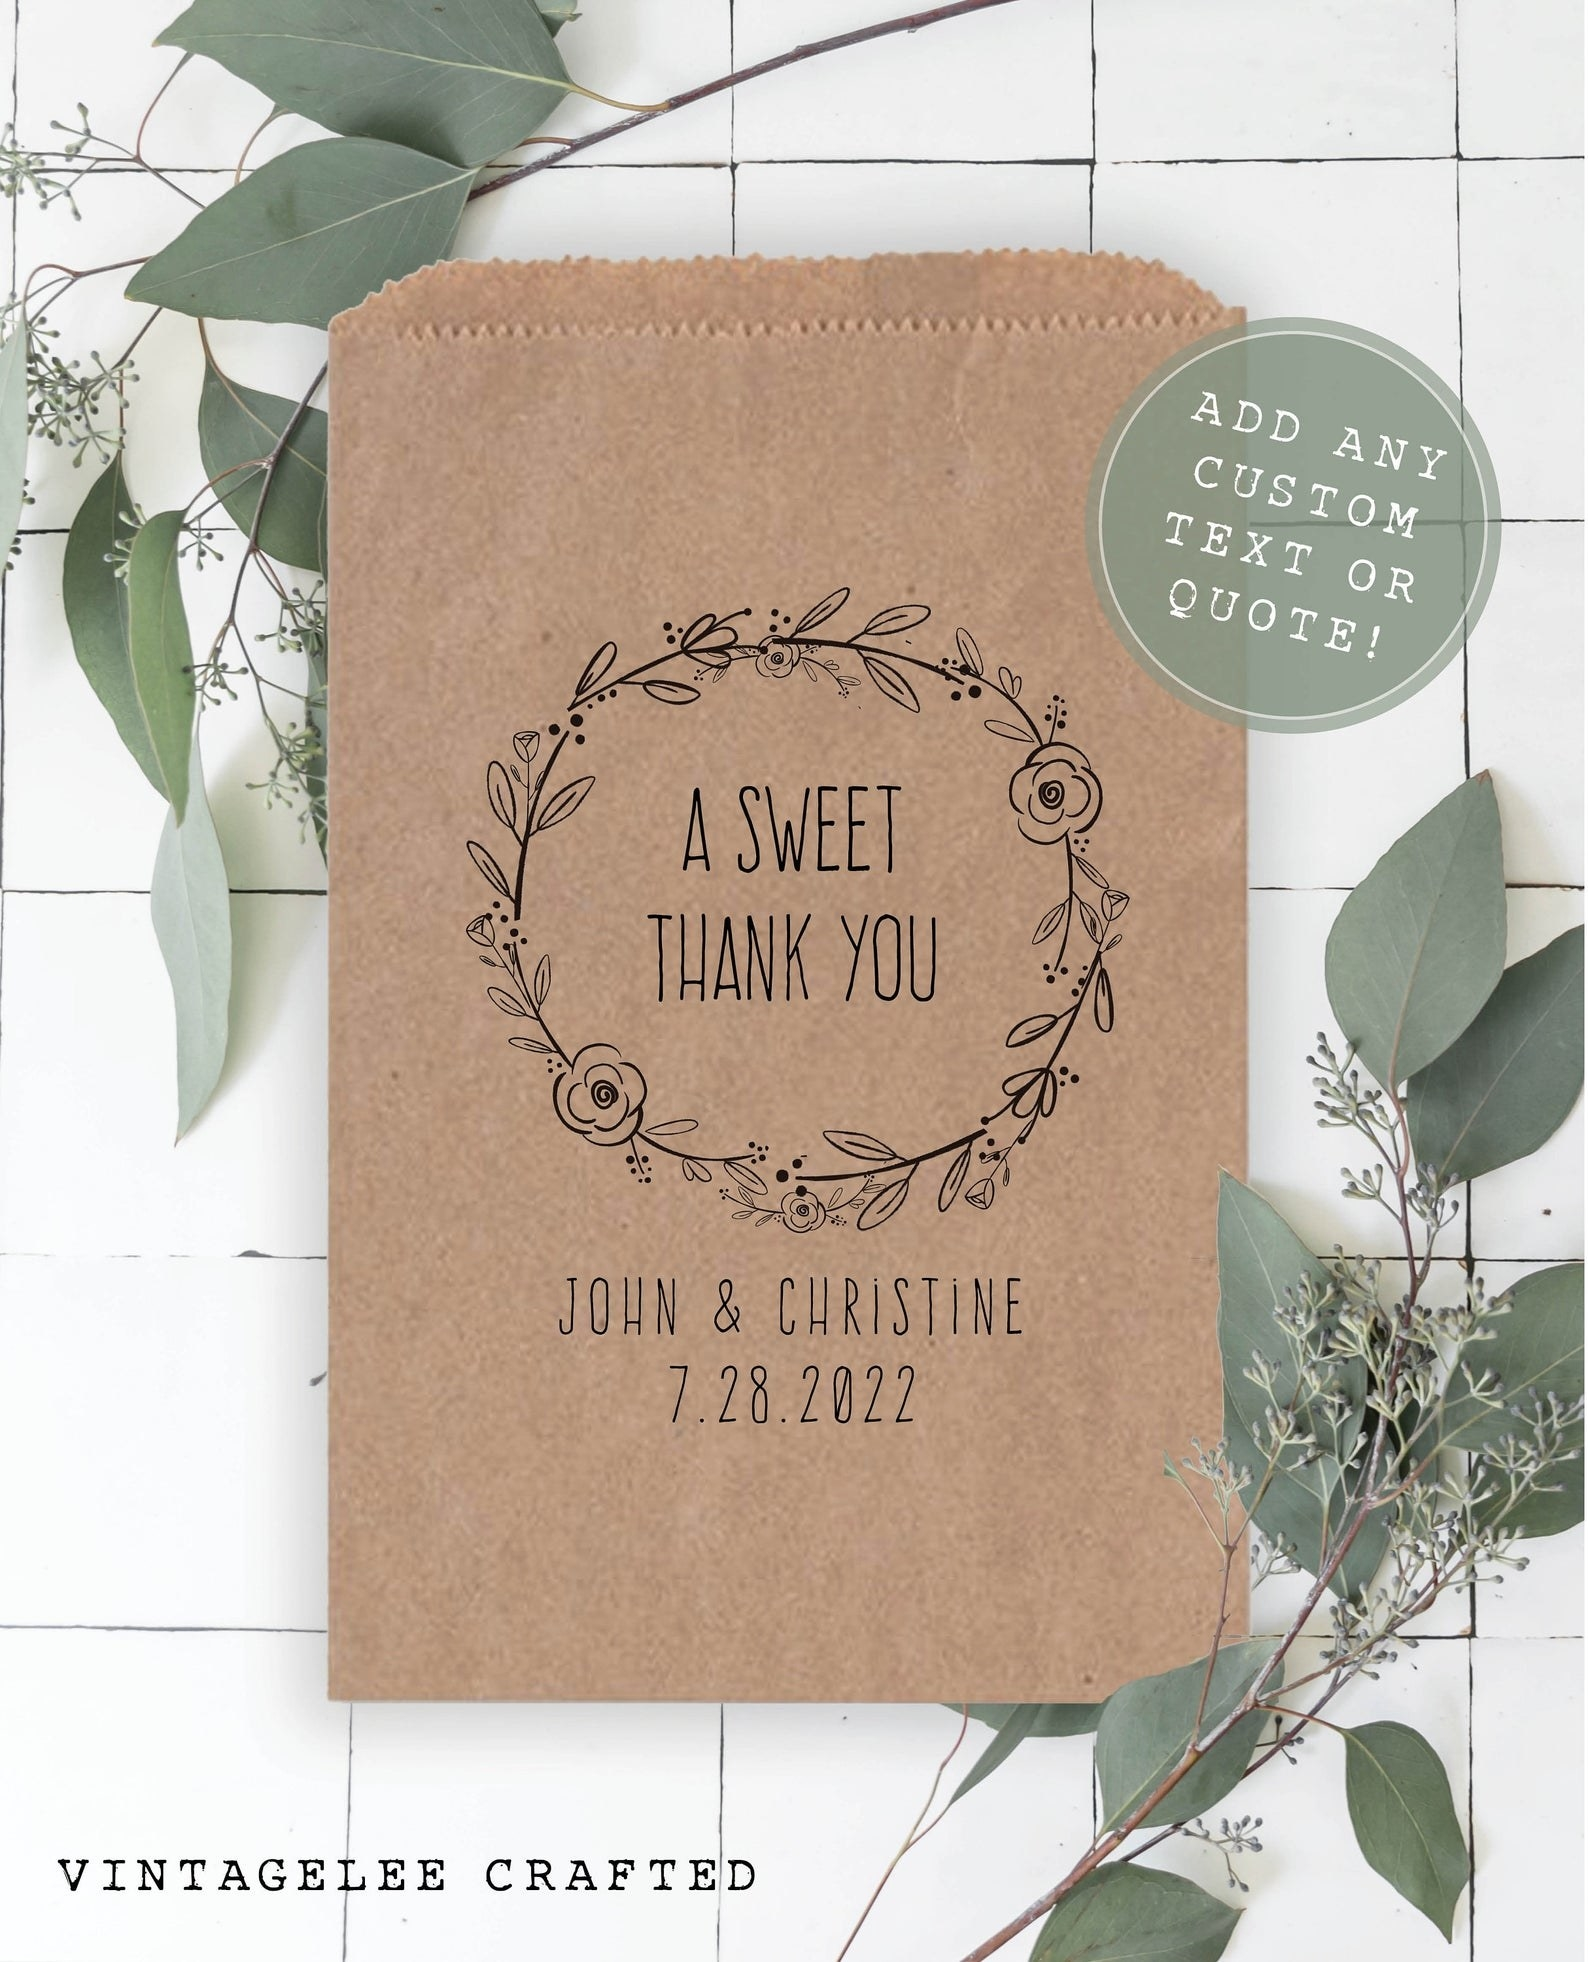 """A brown paper baked goods bag with a garland design and the words """"A sweet thank you"""" inside it and below that it says """"John and Christine"""" with a date"""